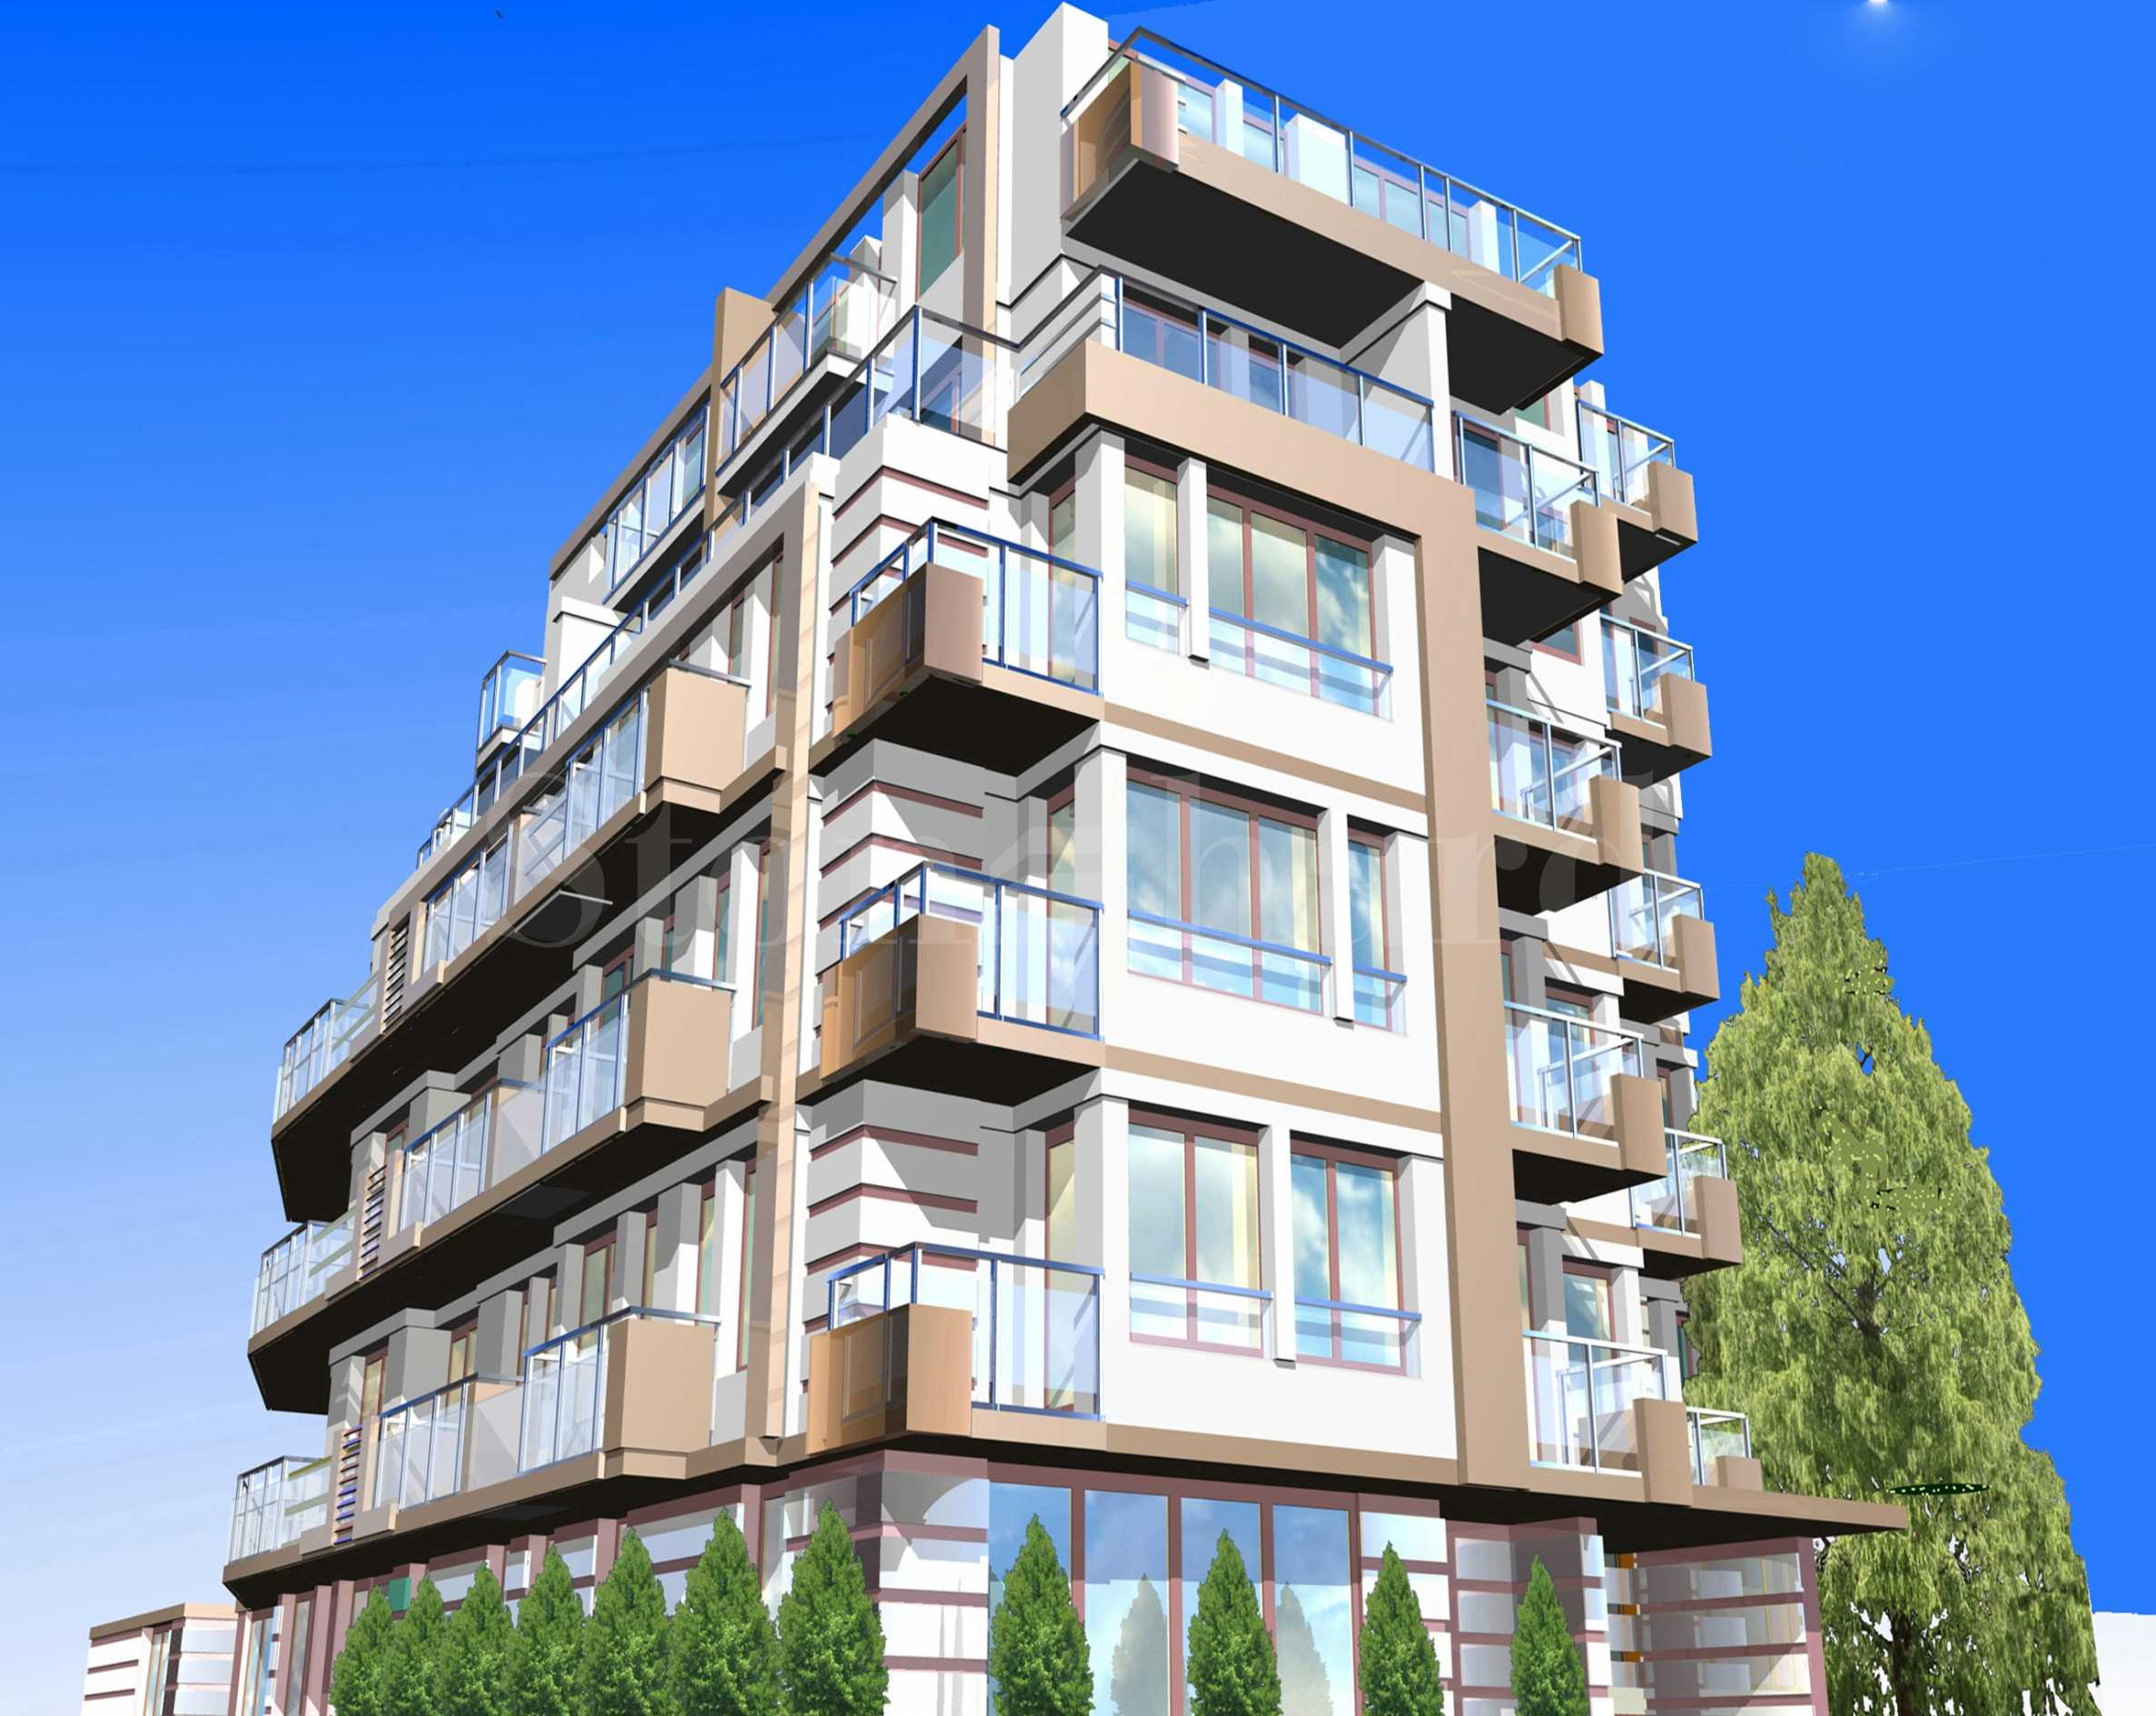 Residential building in Manastiriski Livadi district with different types of apartments for sale1 - Stonehard